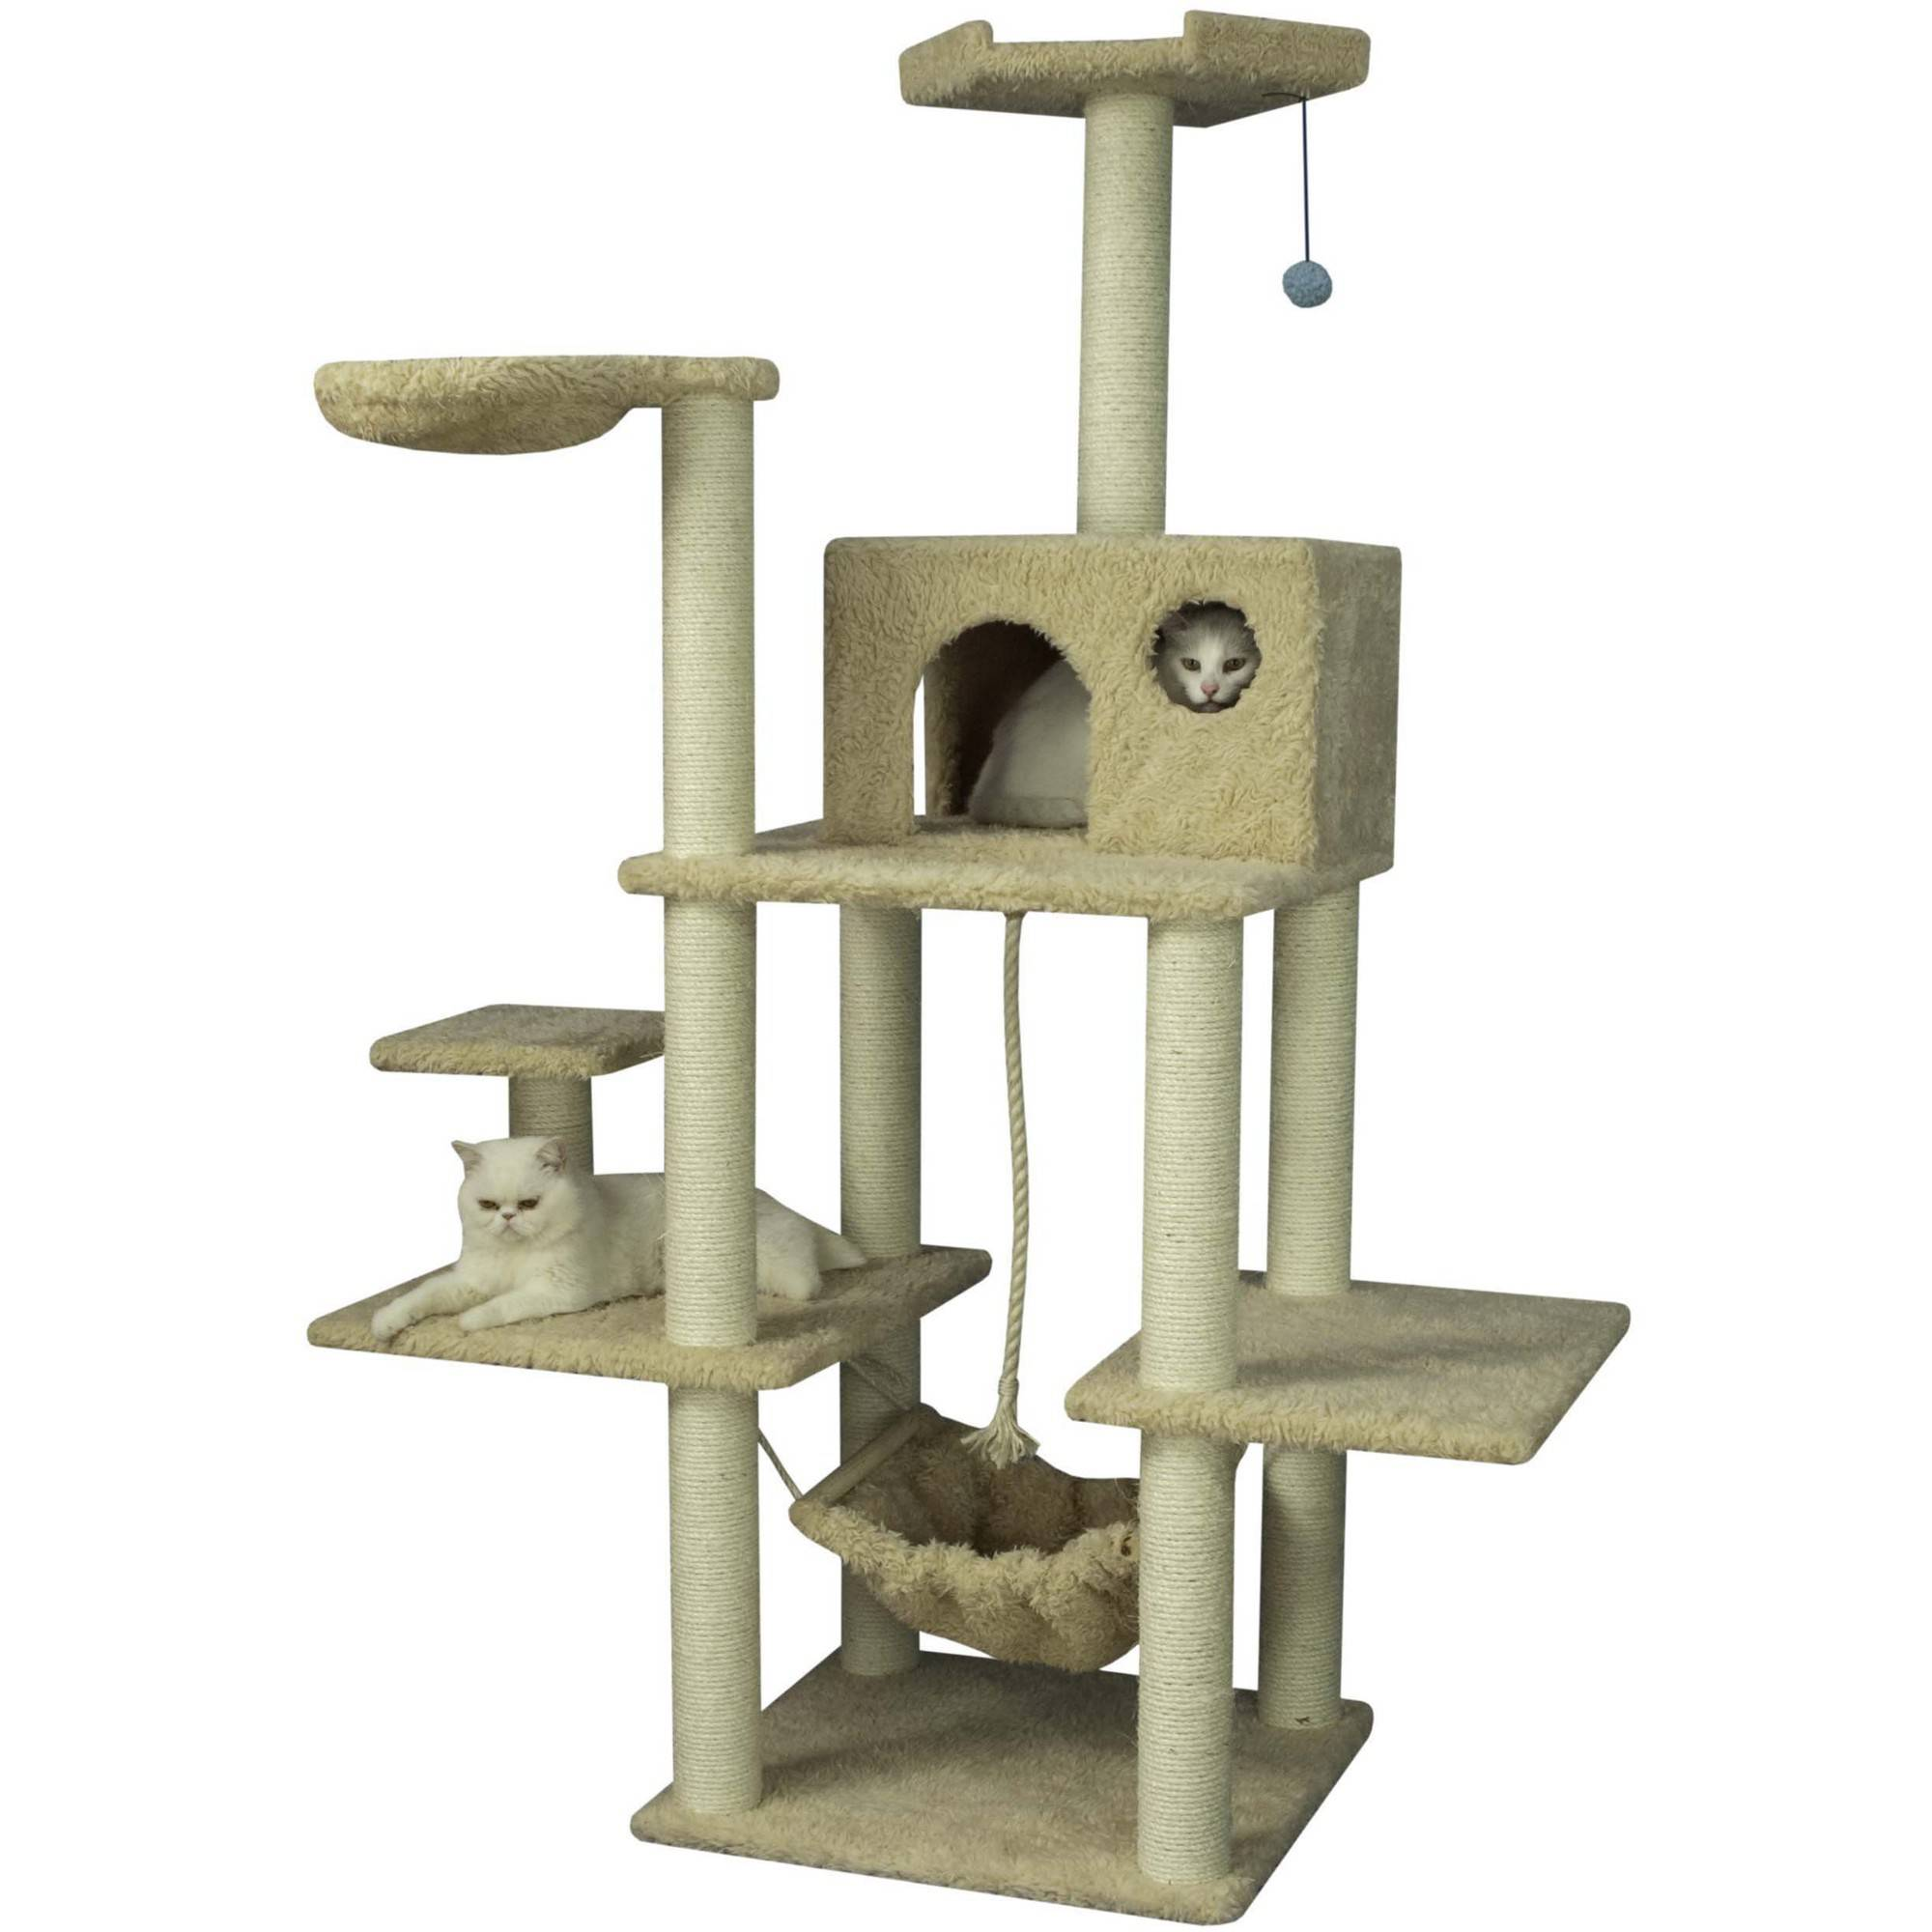 Armarkat Classic Cat Tree Model A6901, 69 inch Beige